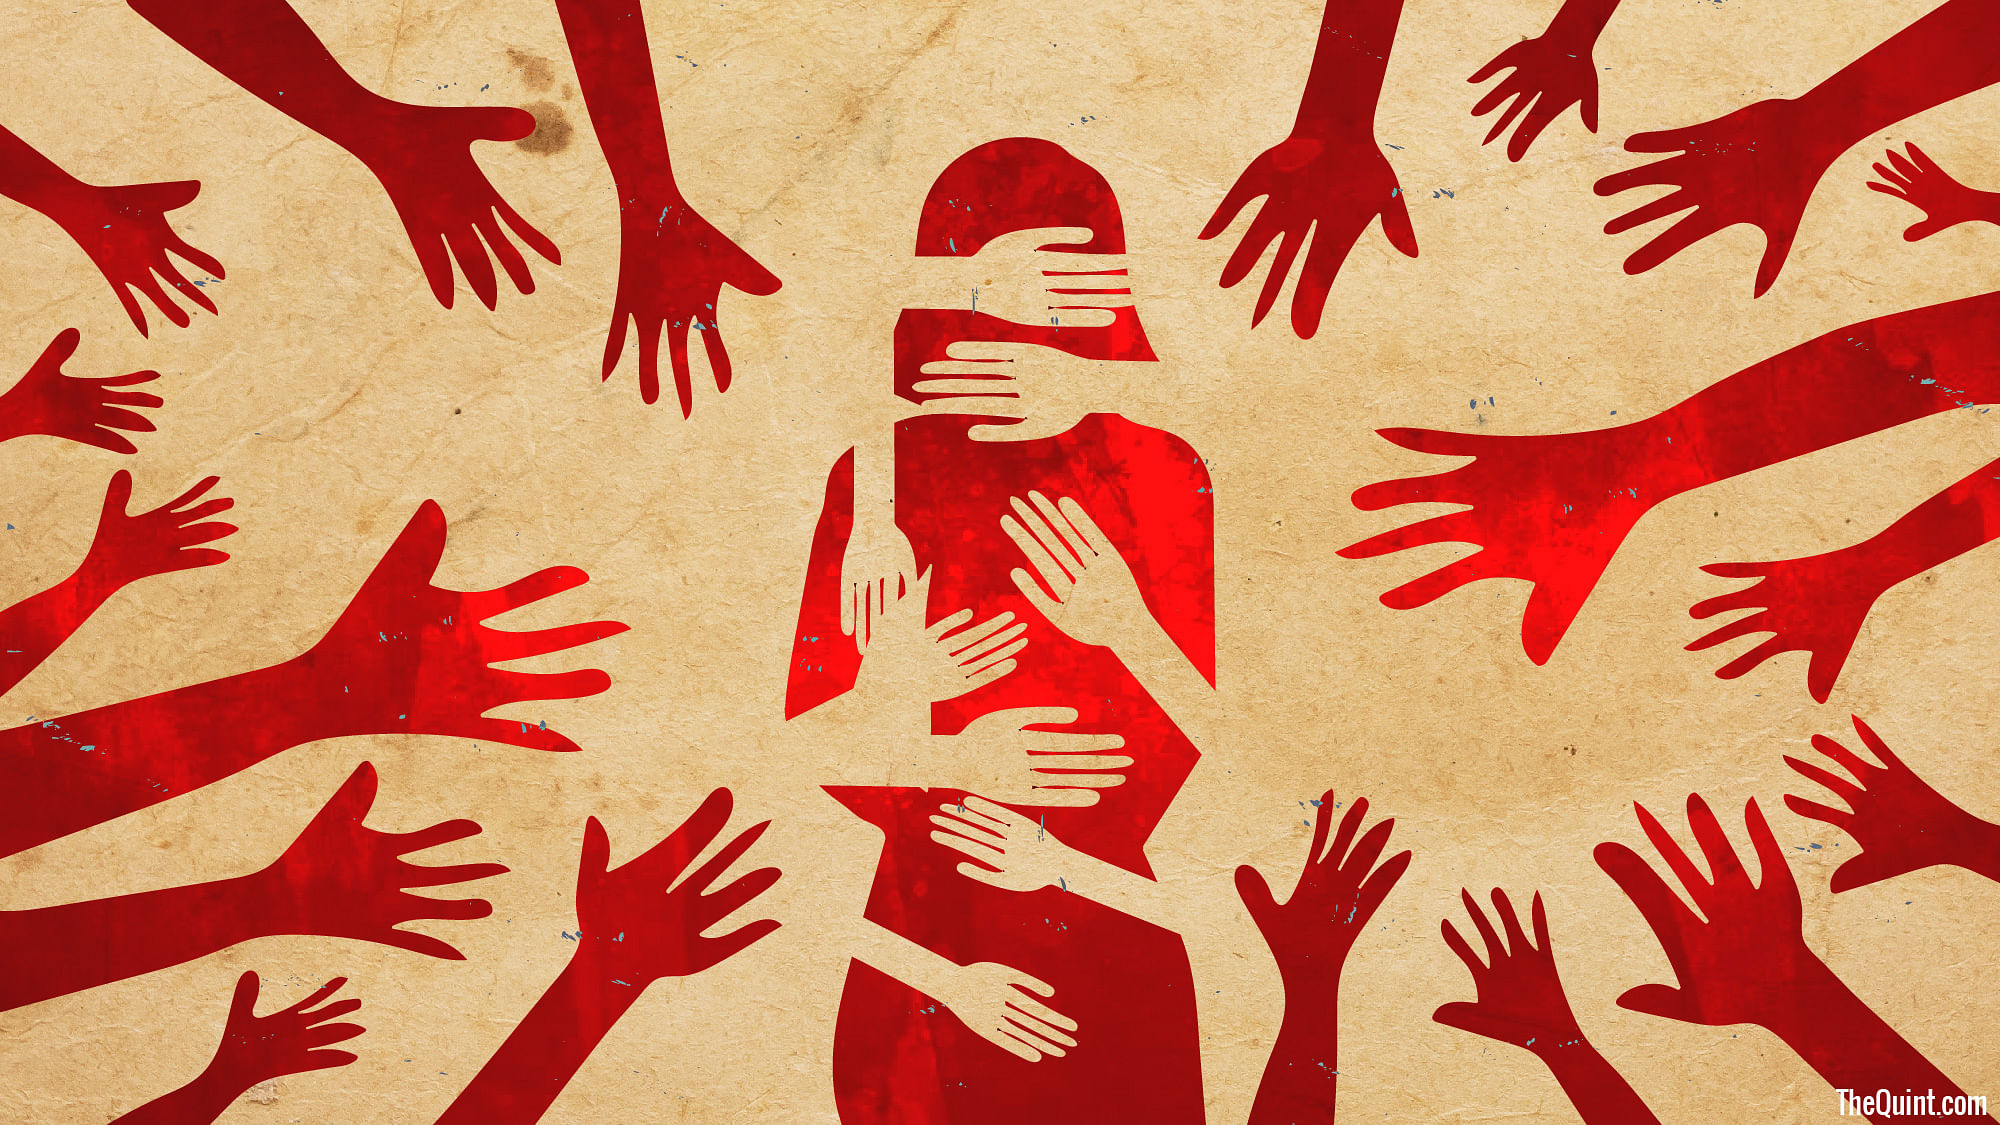 Rajasthan Sisters Gangrape Case: Two women, both sisters, allegedly beaten up gangraped by four men in Luniawas area.